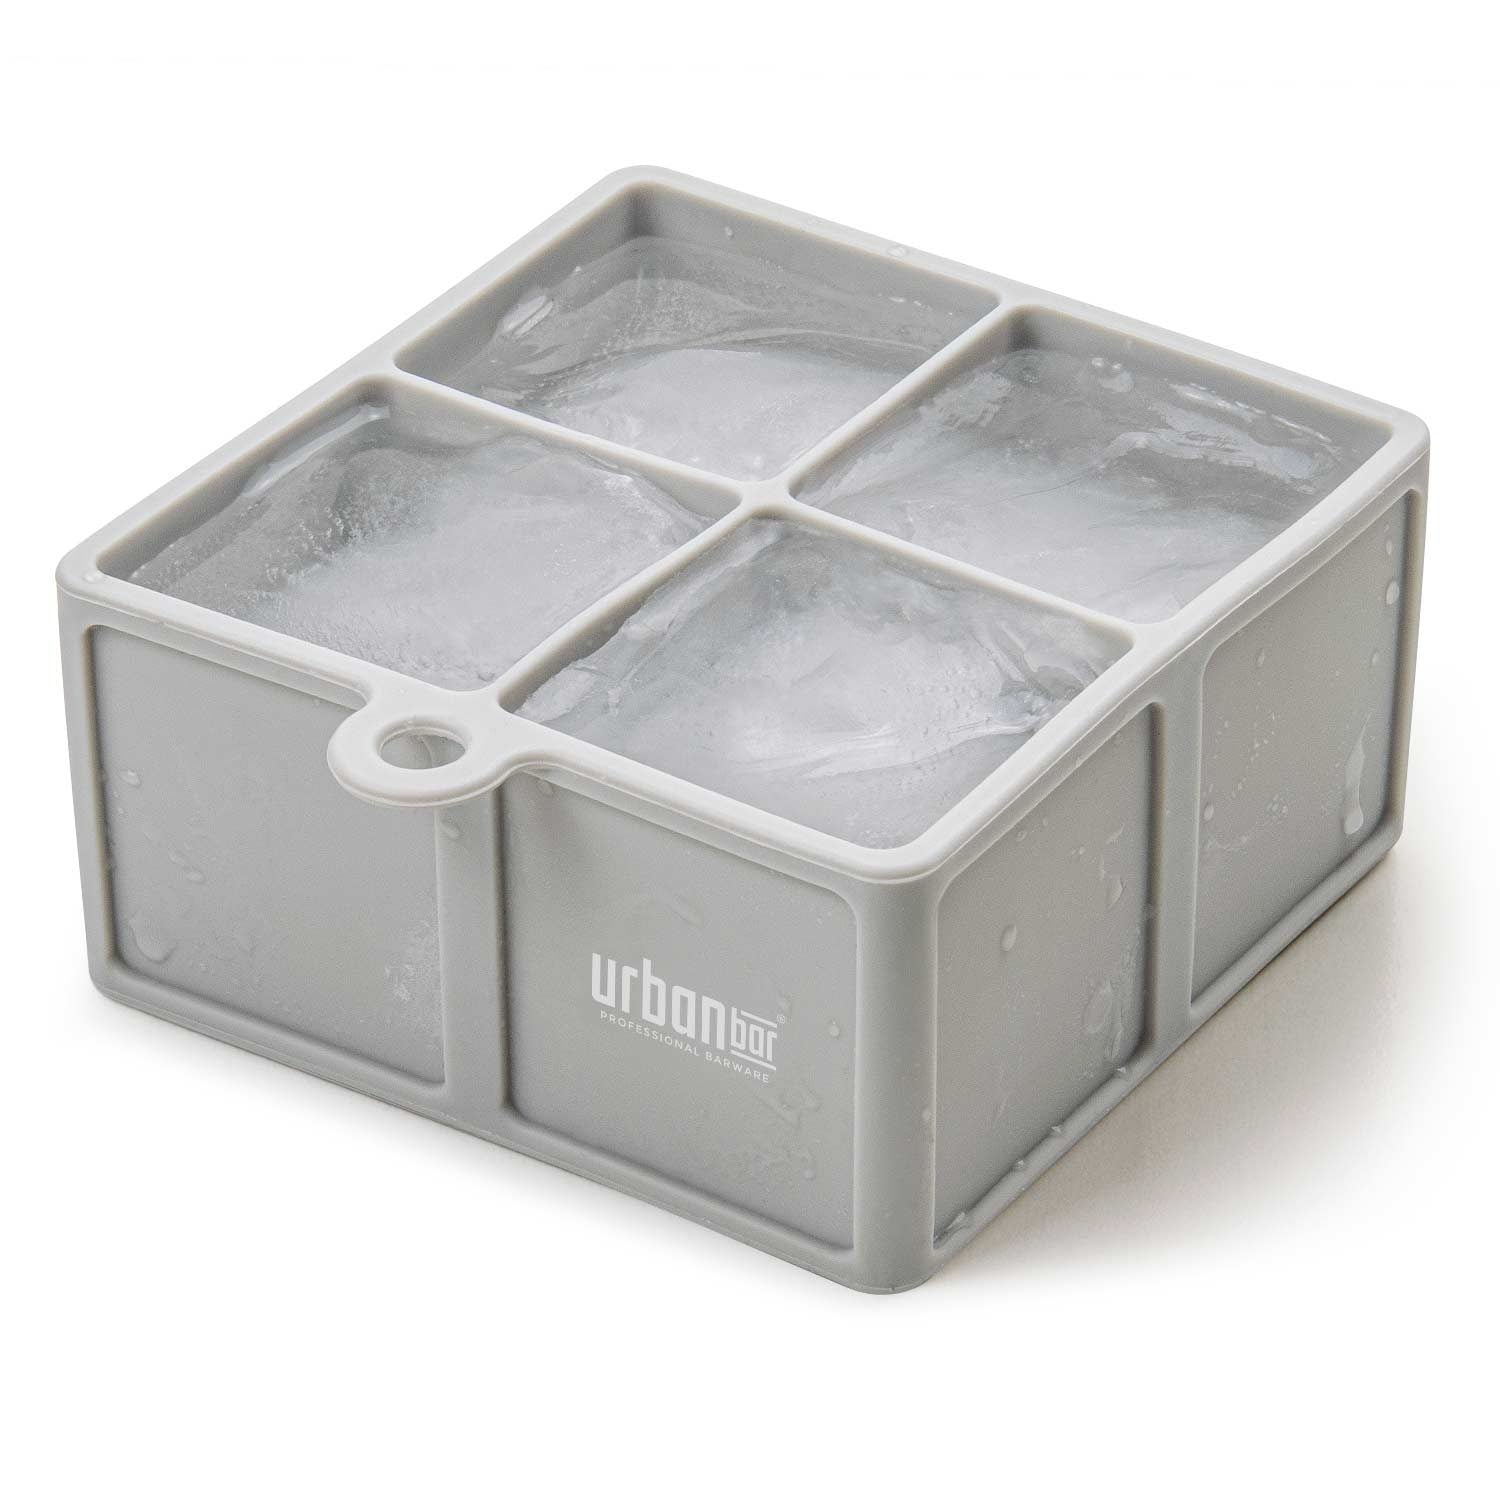 Silicone Ice Cube Tray - 4 Cube